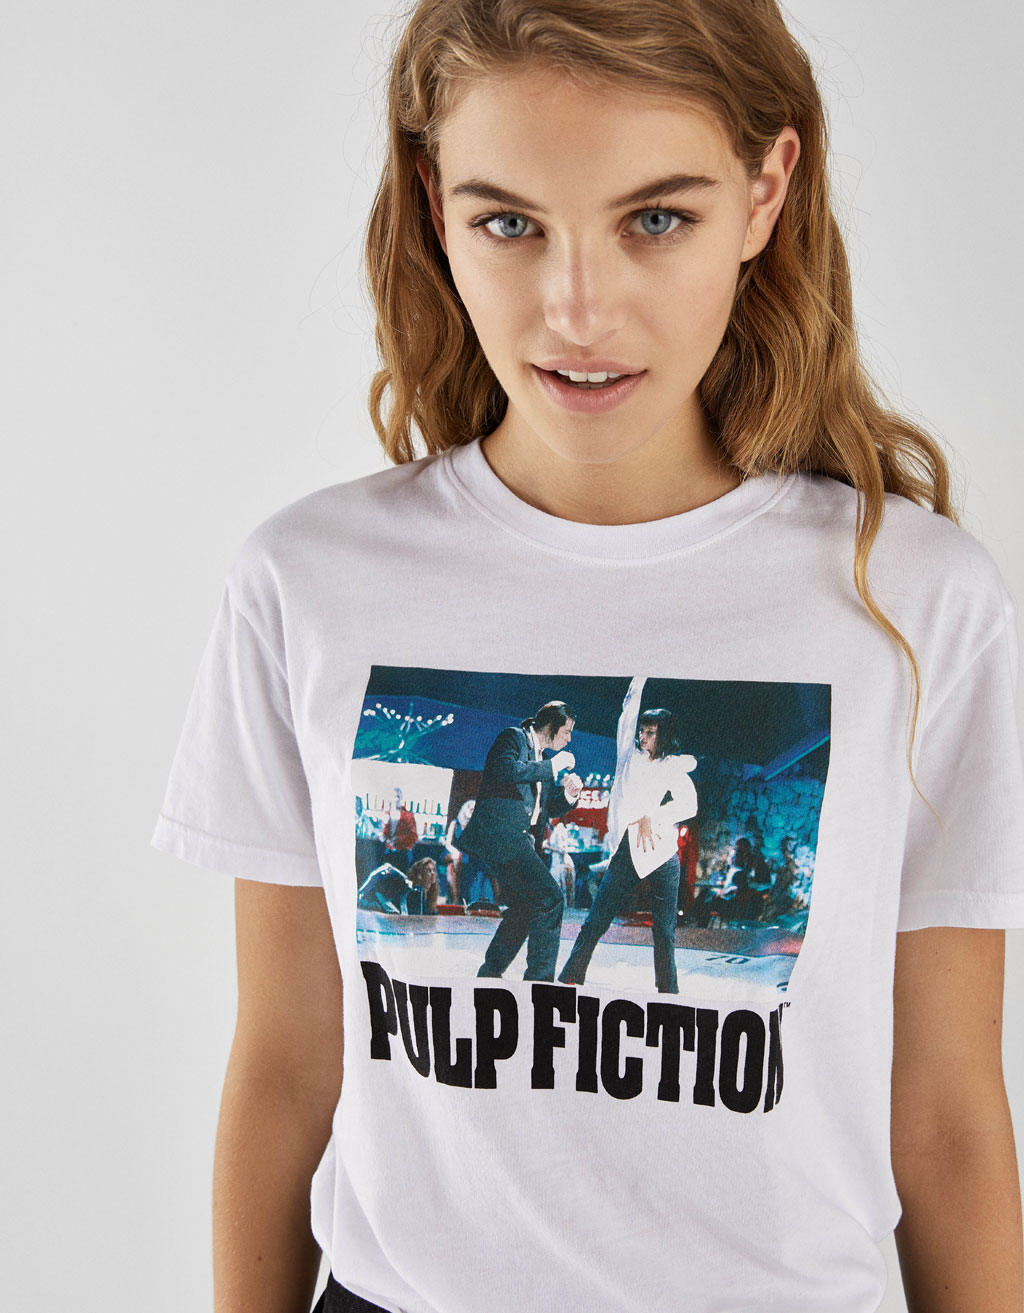 Футболка с надписью Pulp Fiction